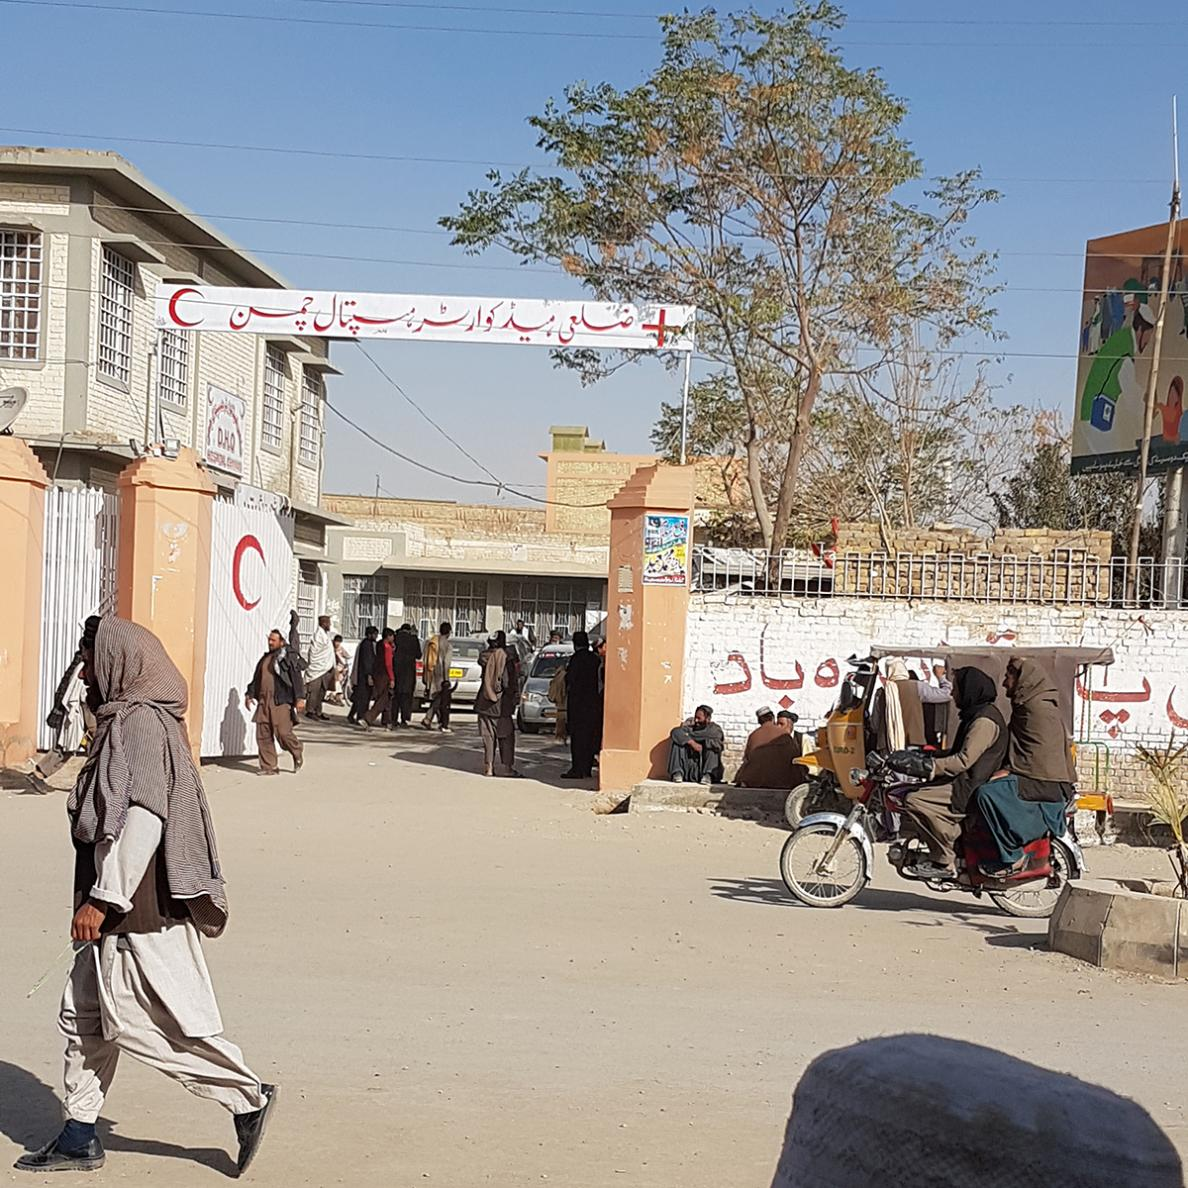 The MSF hospital in Chaman, Pakistan